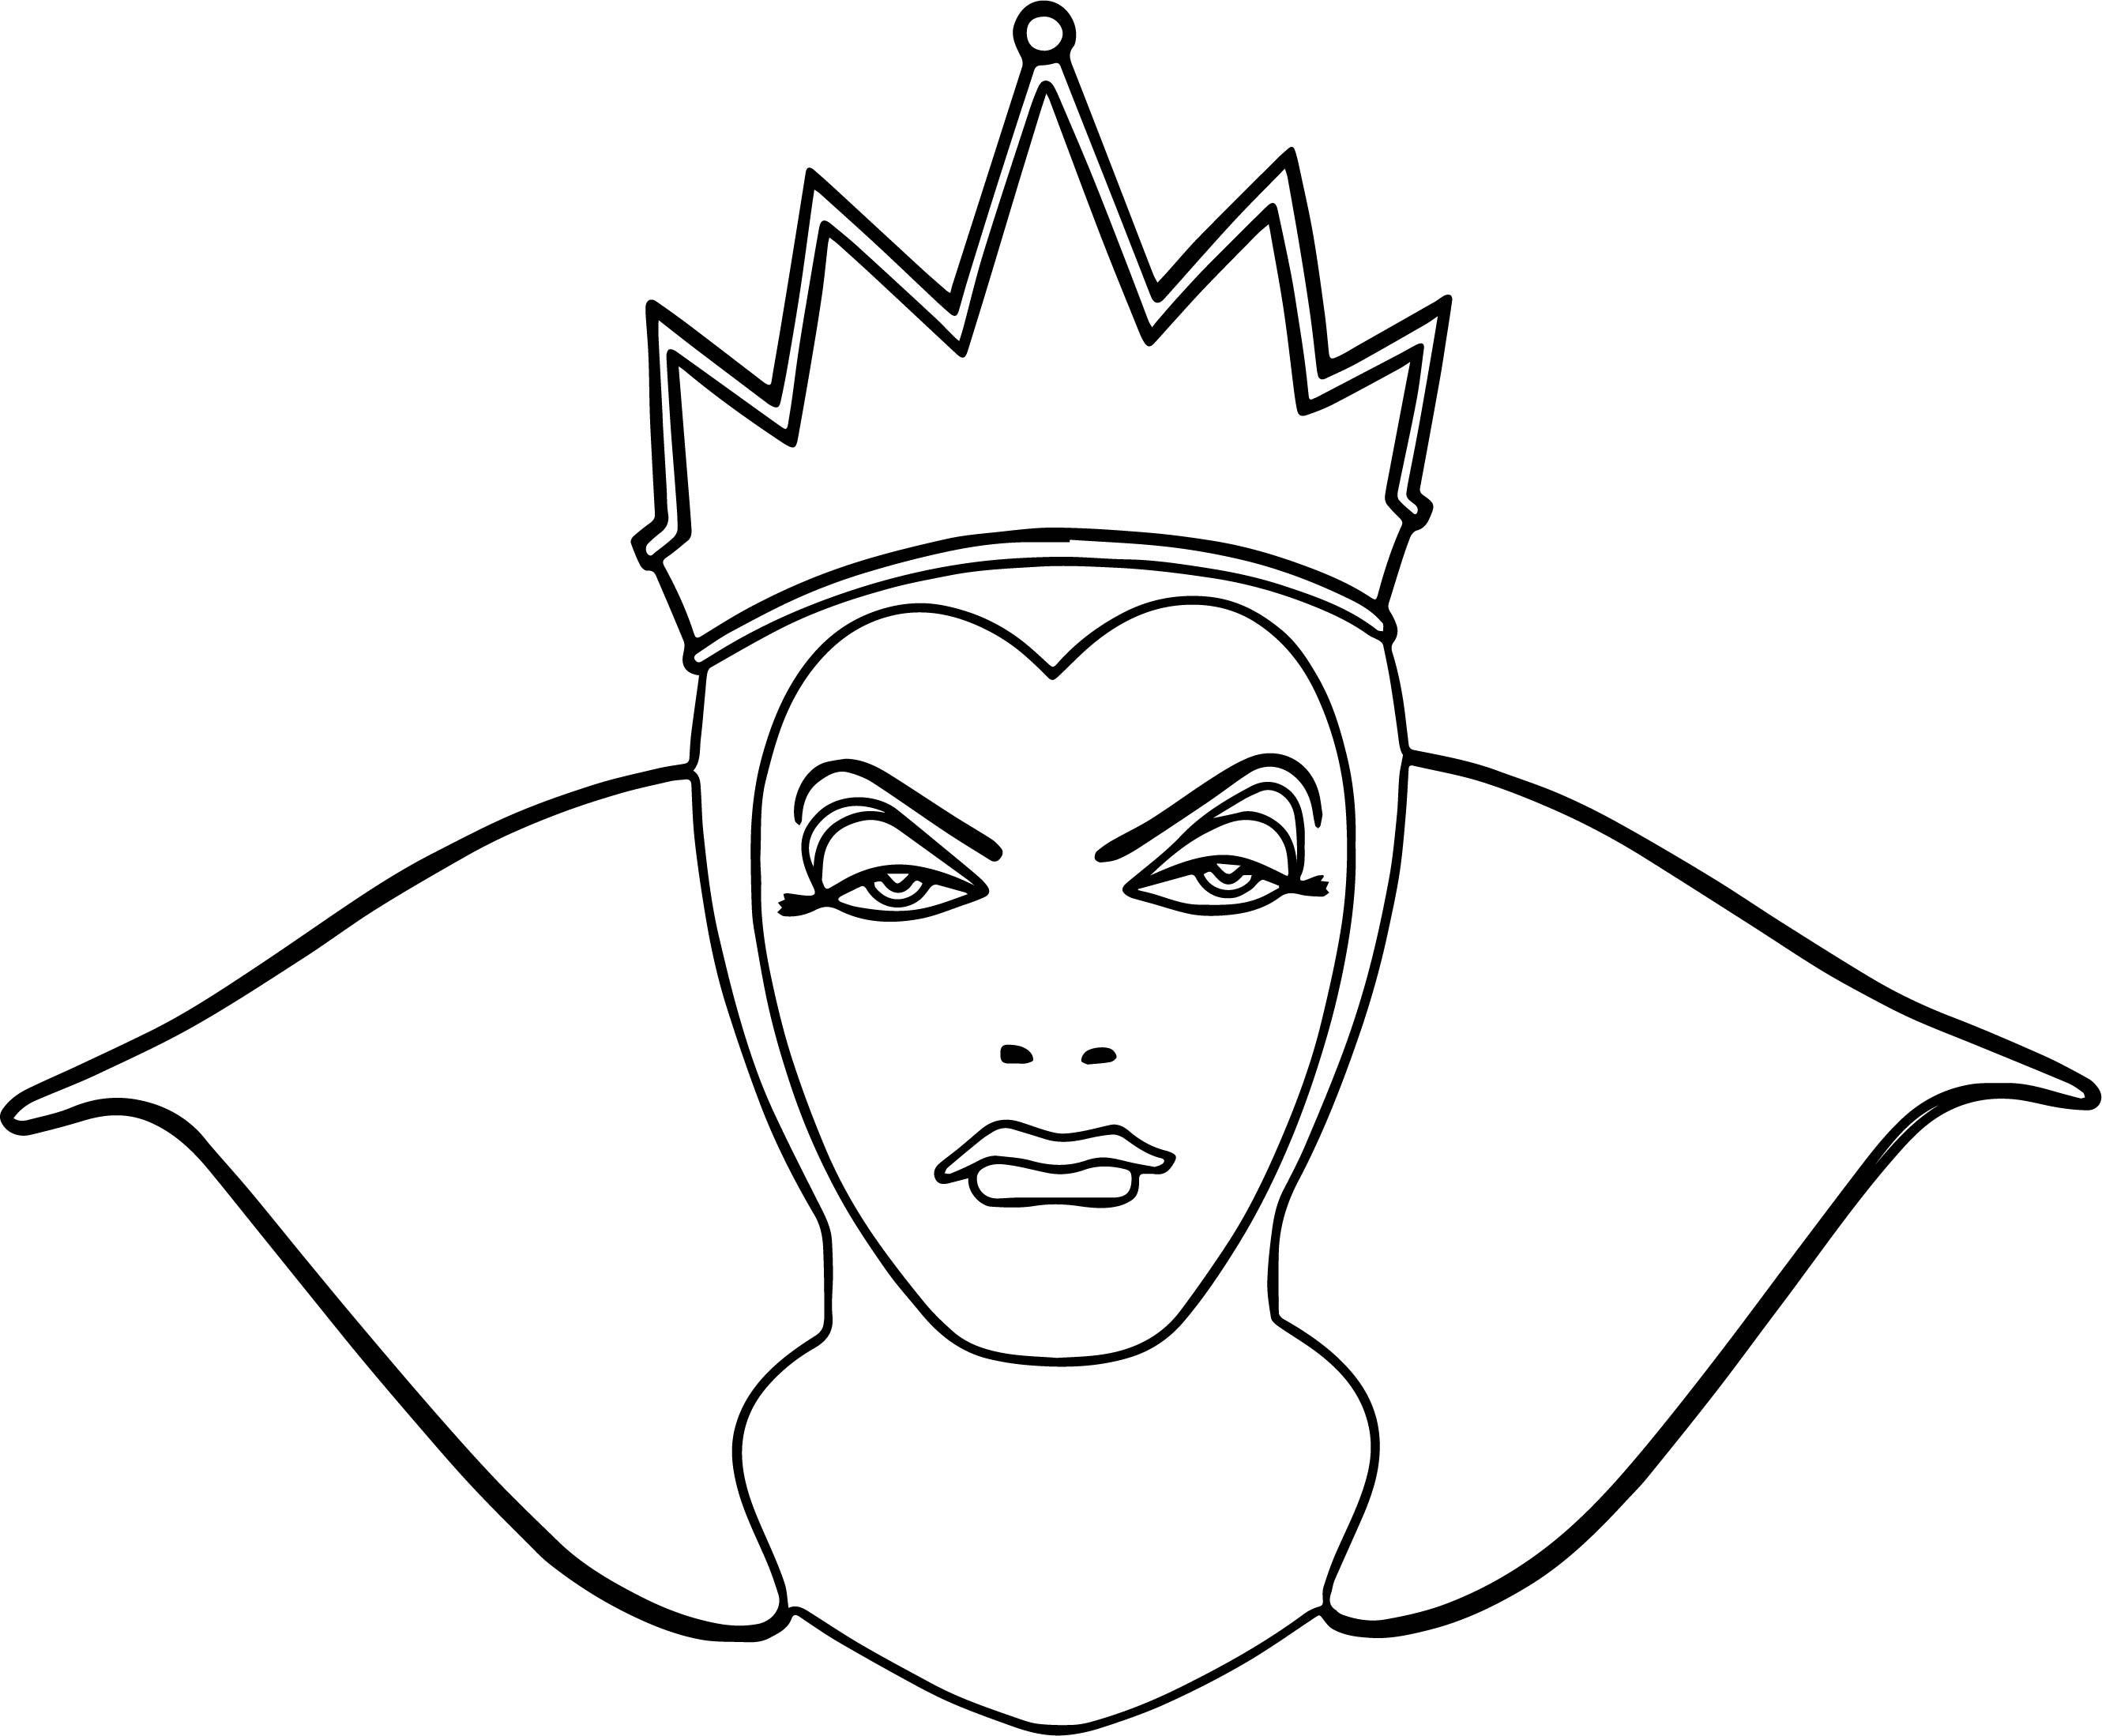 2661x2198 Unbelievable Snow White Evil Queen Witch And Huntsman Front View